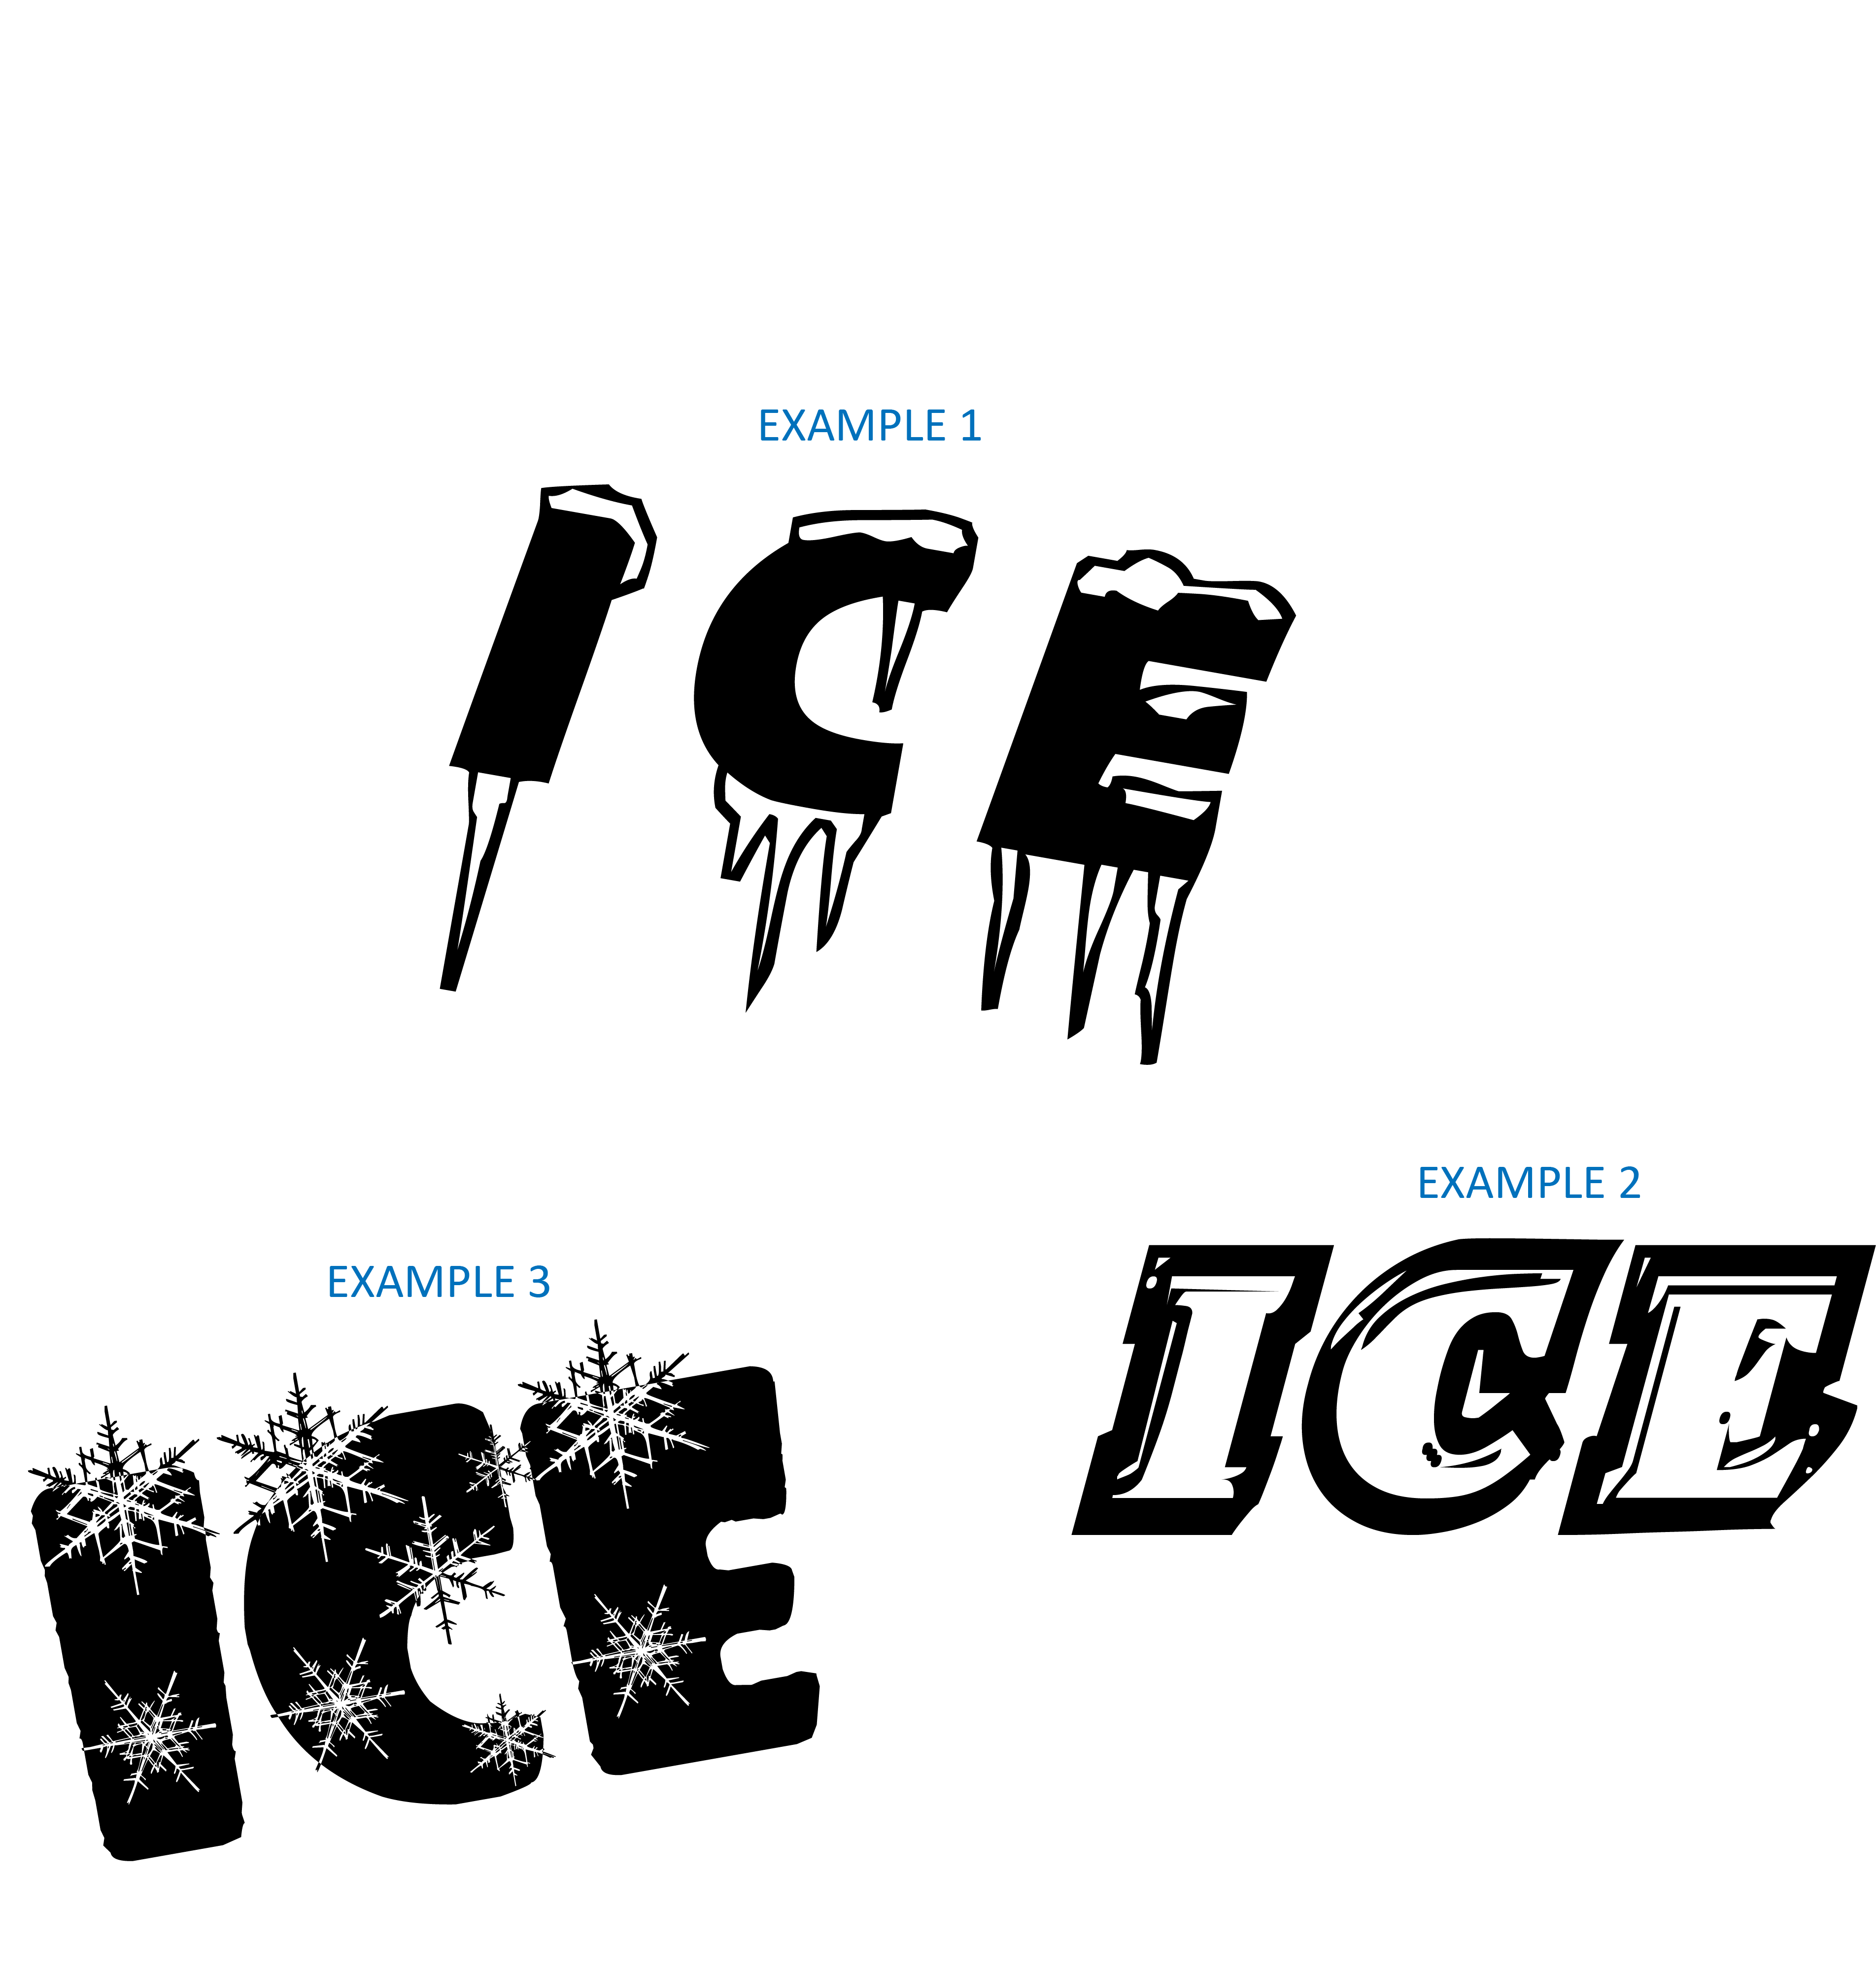 11 Ice Cold Font Images